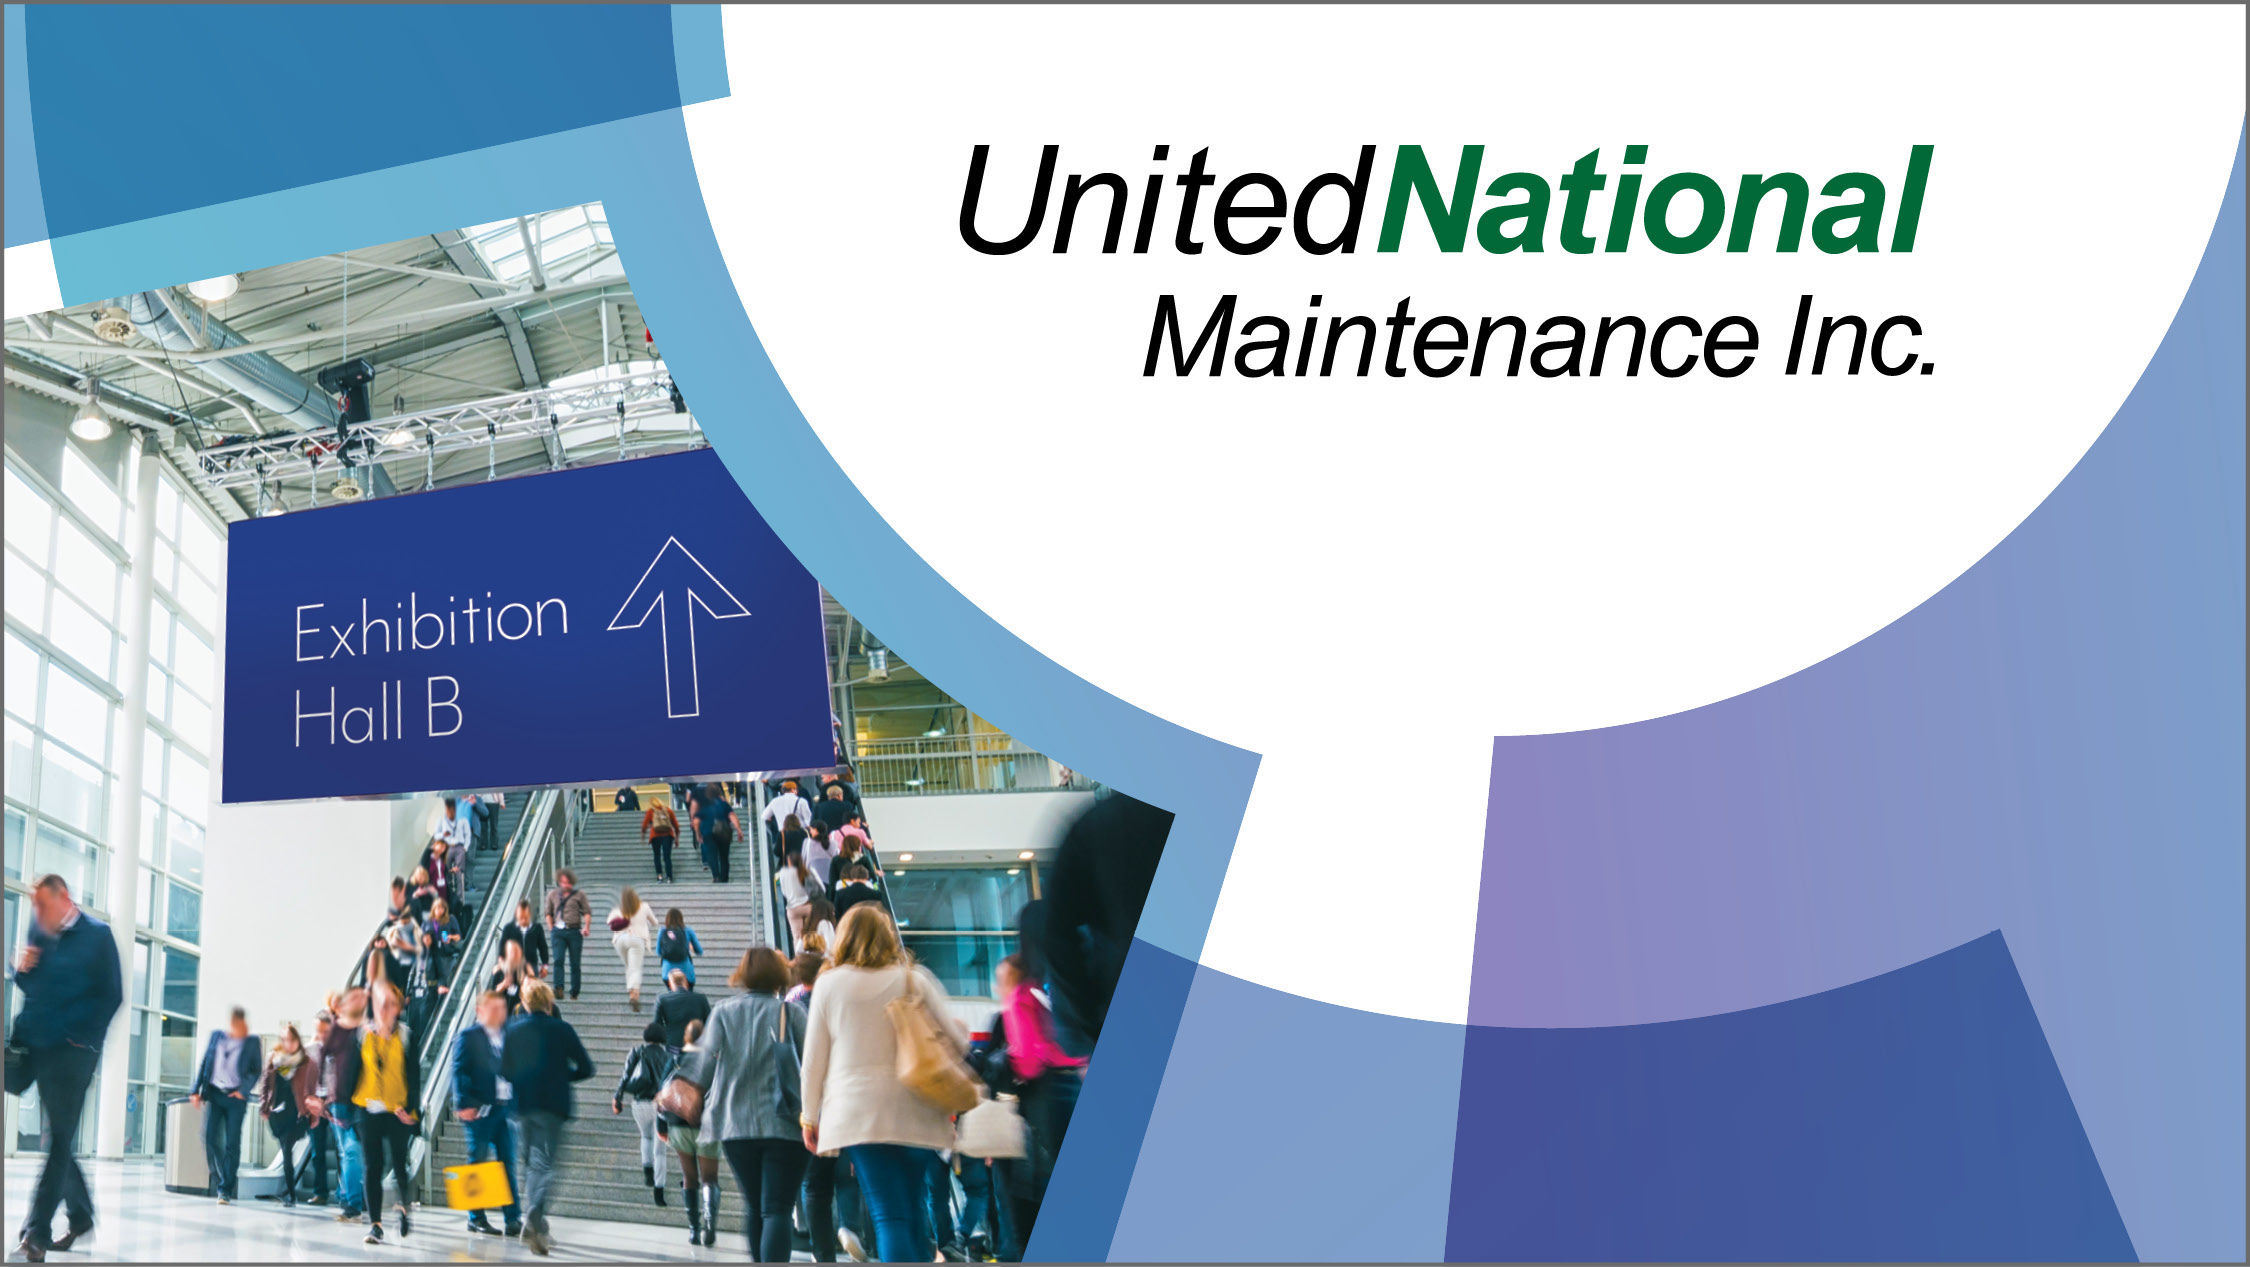 United National Maintenance Company